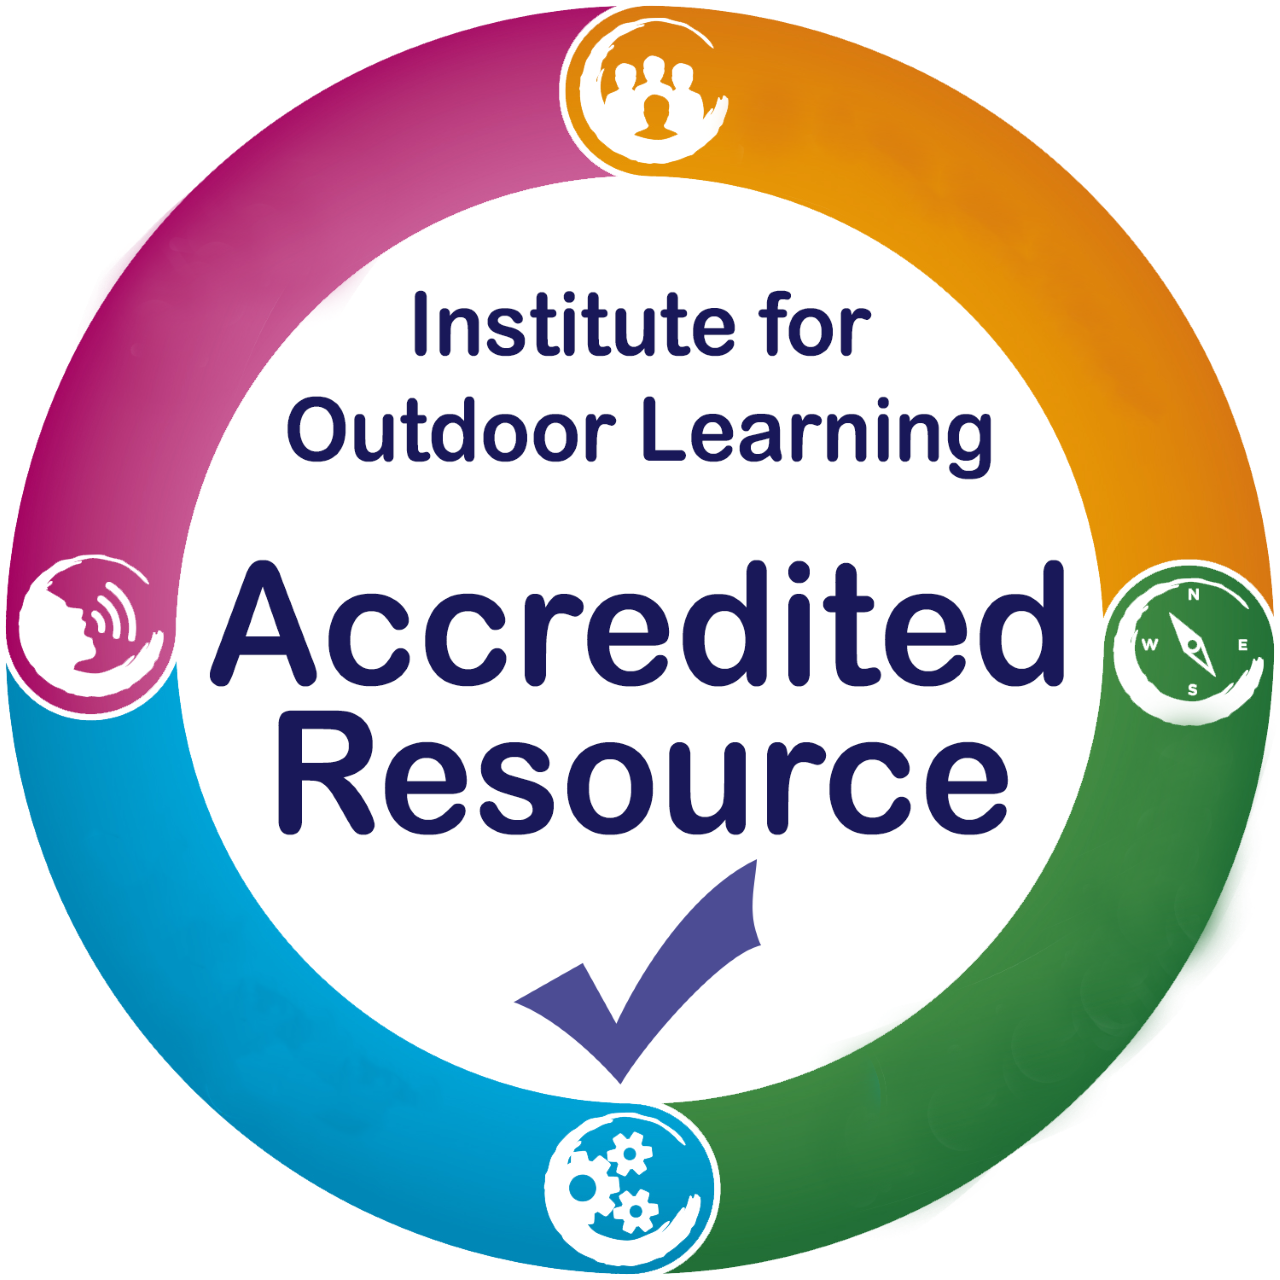 Resource Accreditation